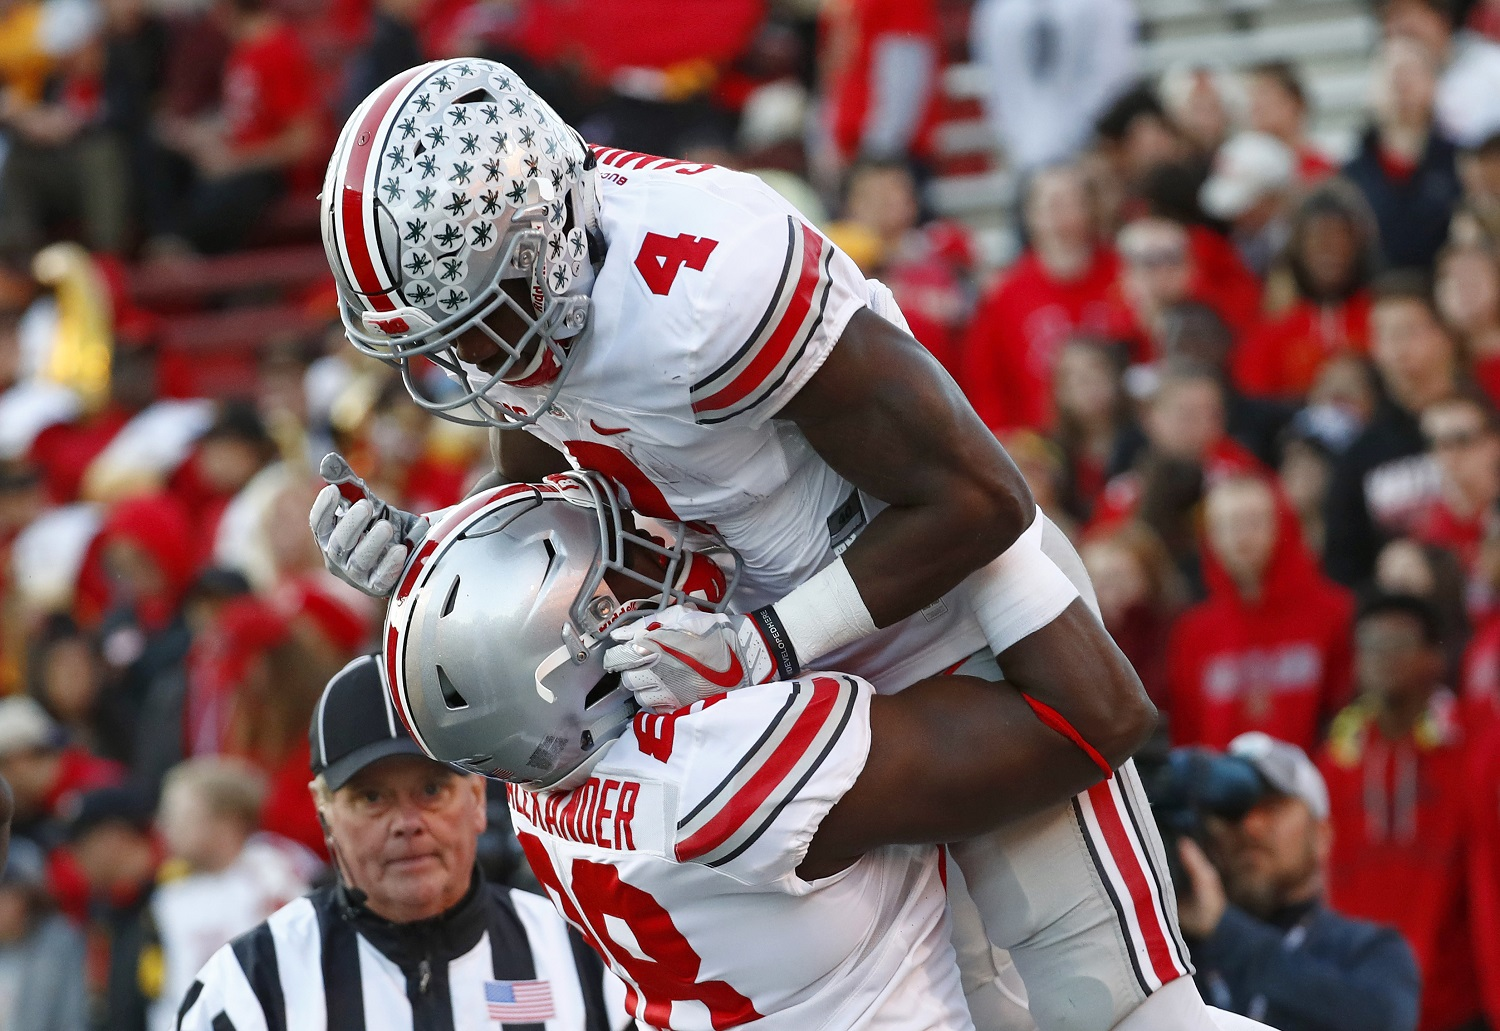 Ohio State running back Curtis Samuel, top, celebrates his touchdown with teammate A.J. Alexander in the first half of an NCAA college football game against Maryland in College Park, Md., Saturday, Nov. 12, 2016. (AP Photo/Patrick Semansky)